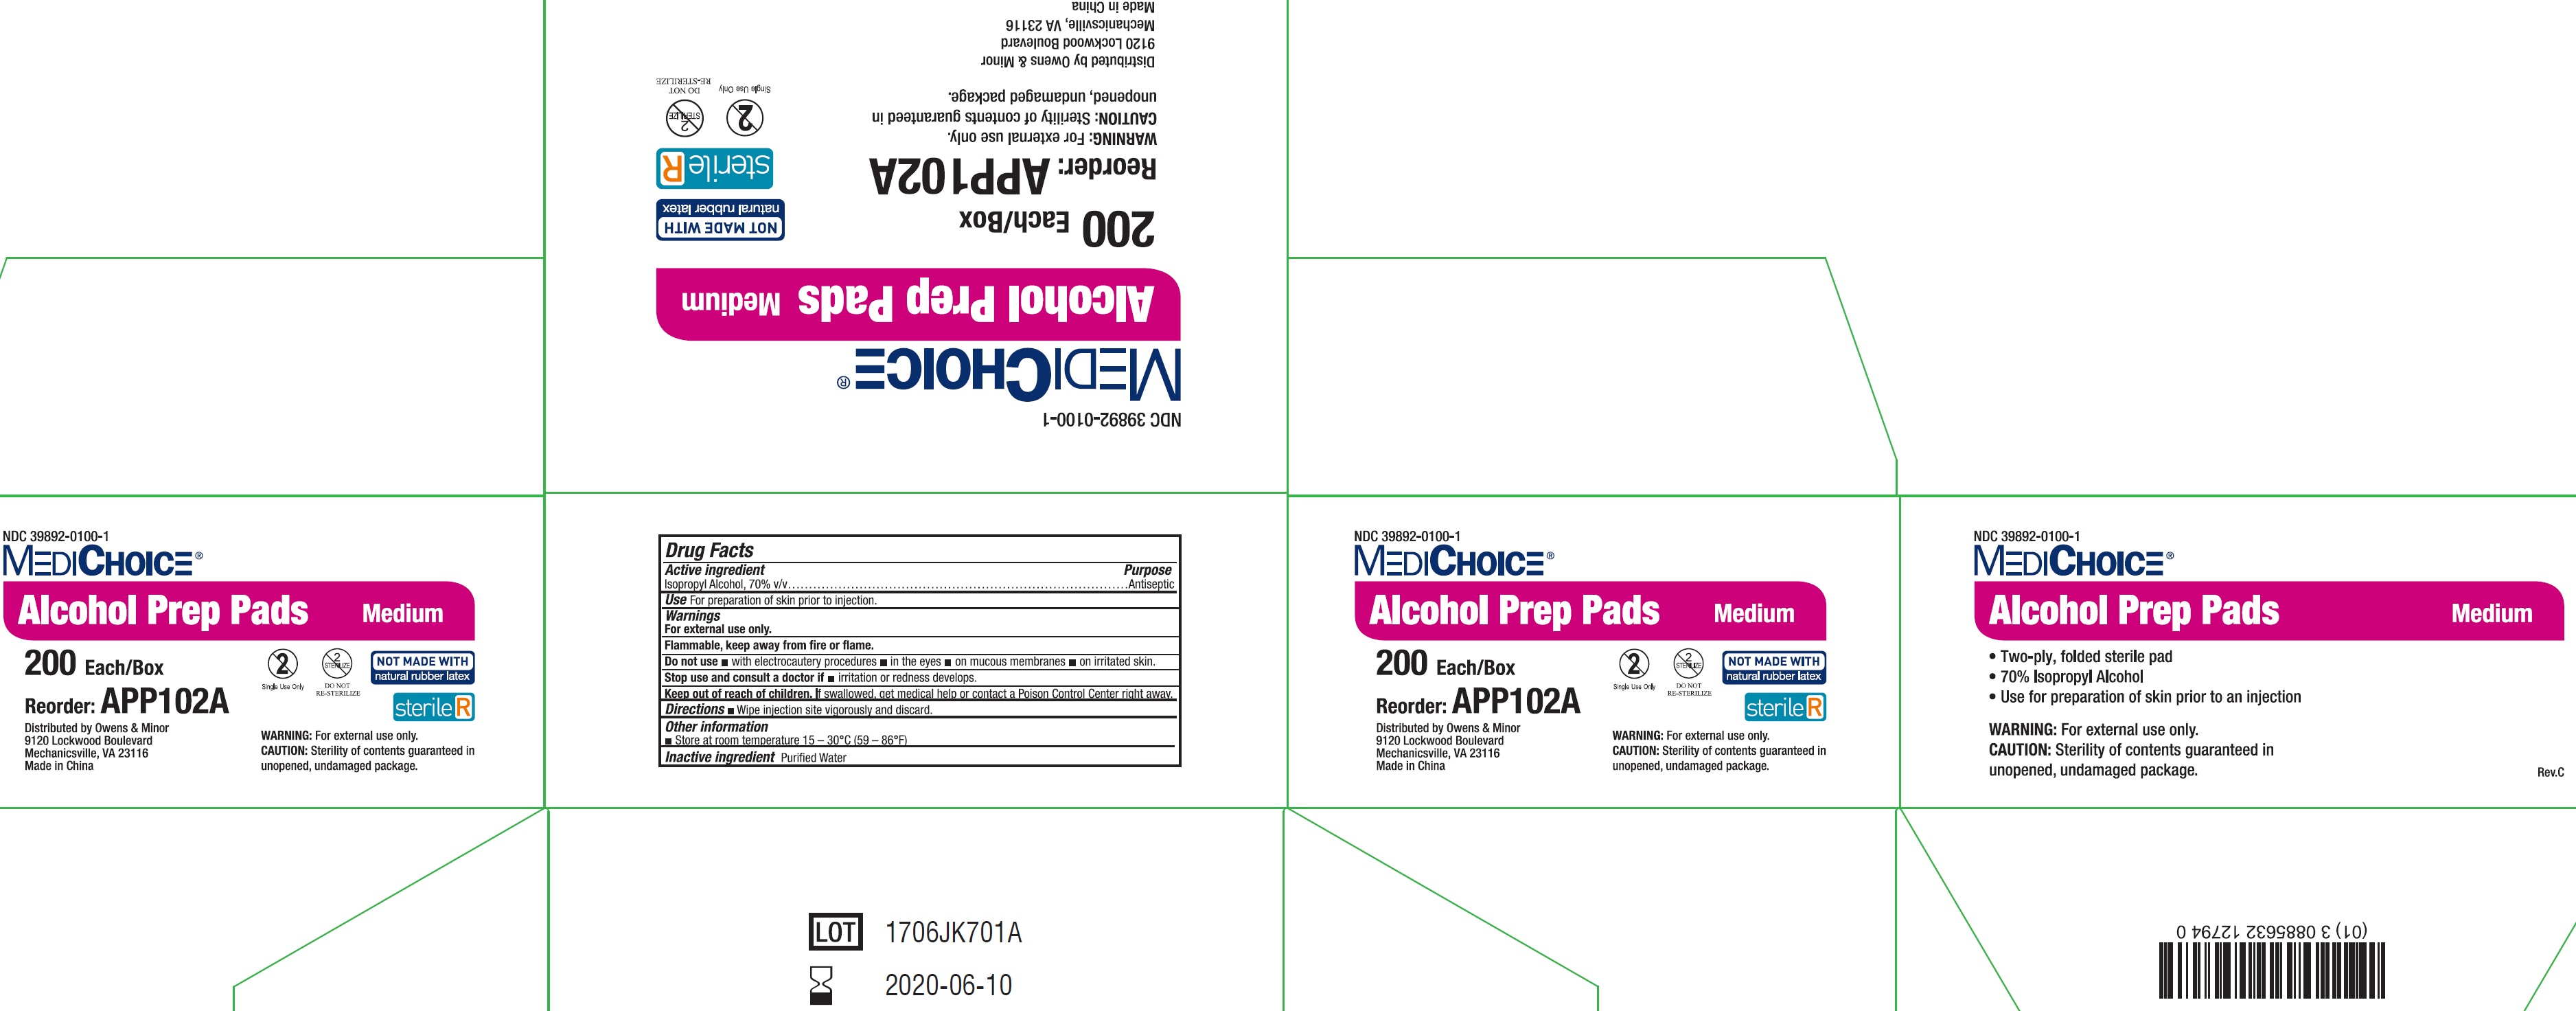 NDC - 39892-0100-1 - Alcohol Prep Pad - Outer Package1